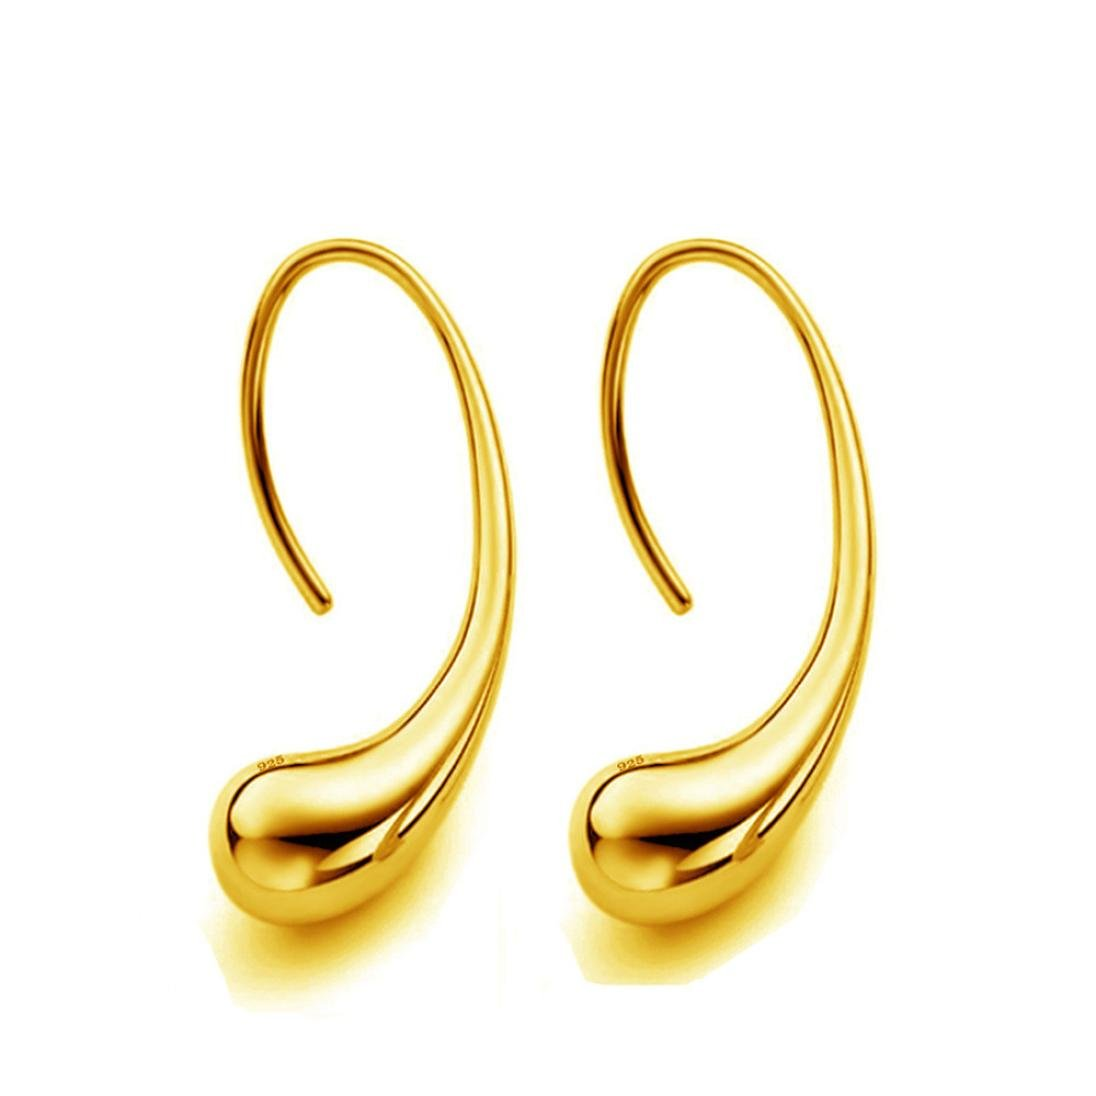 9e9abeb56 Amazon.com: Auwer 2019 Elegant 100% 925 Sterling Silver Earrings for Women  with 925 Silver Seal Antiallergic Stud Earring Fashion Jewelry (Silver):  Toys & ...